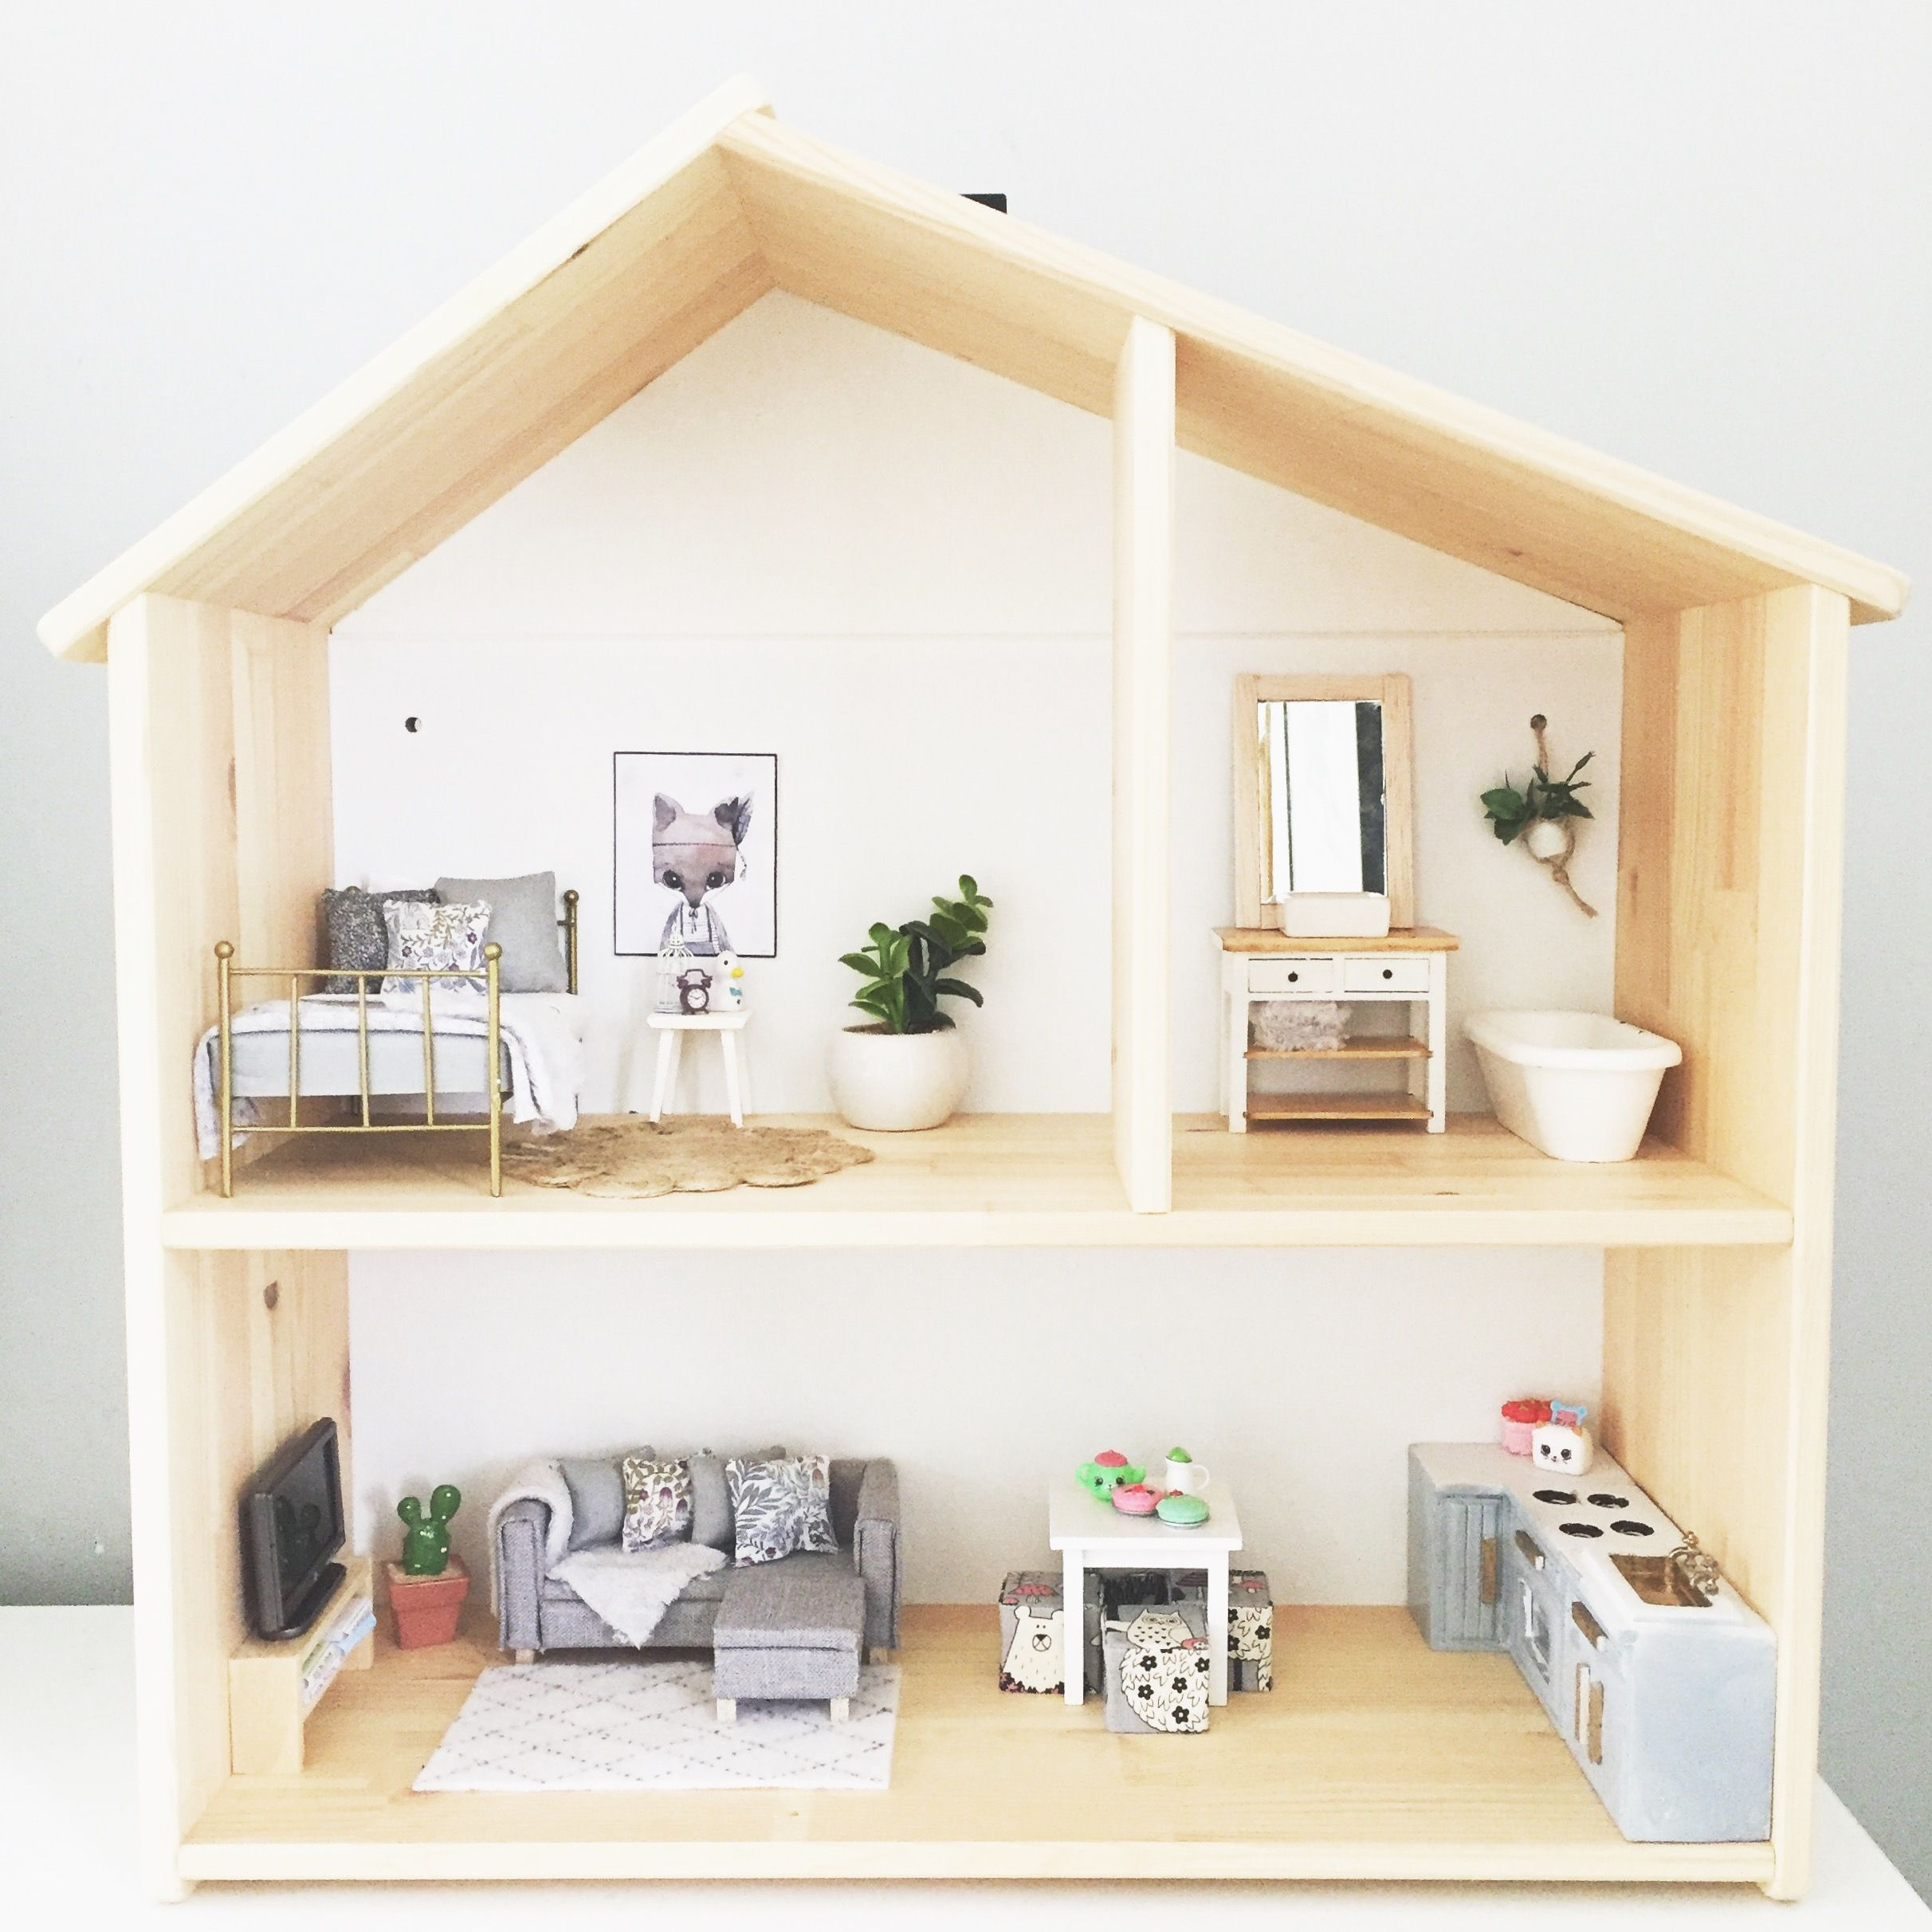 Ikea flisat modern dolls house renovation in 1 12 scale for Casa bambole ikea